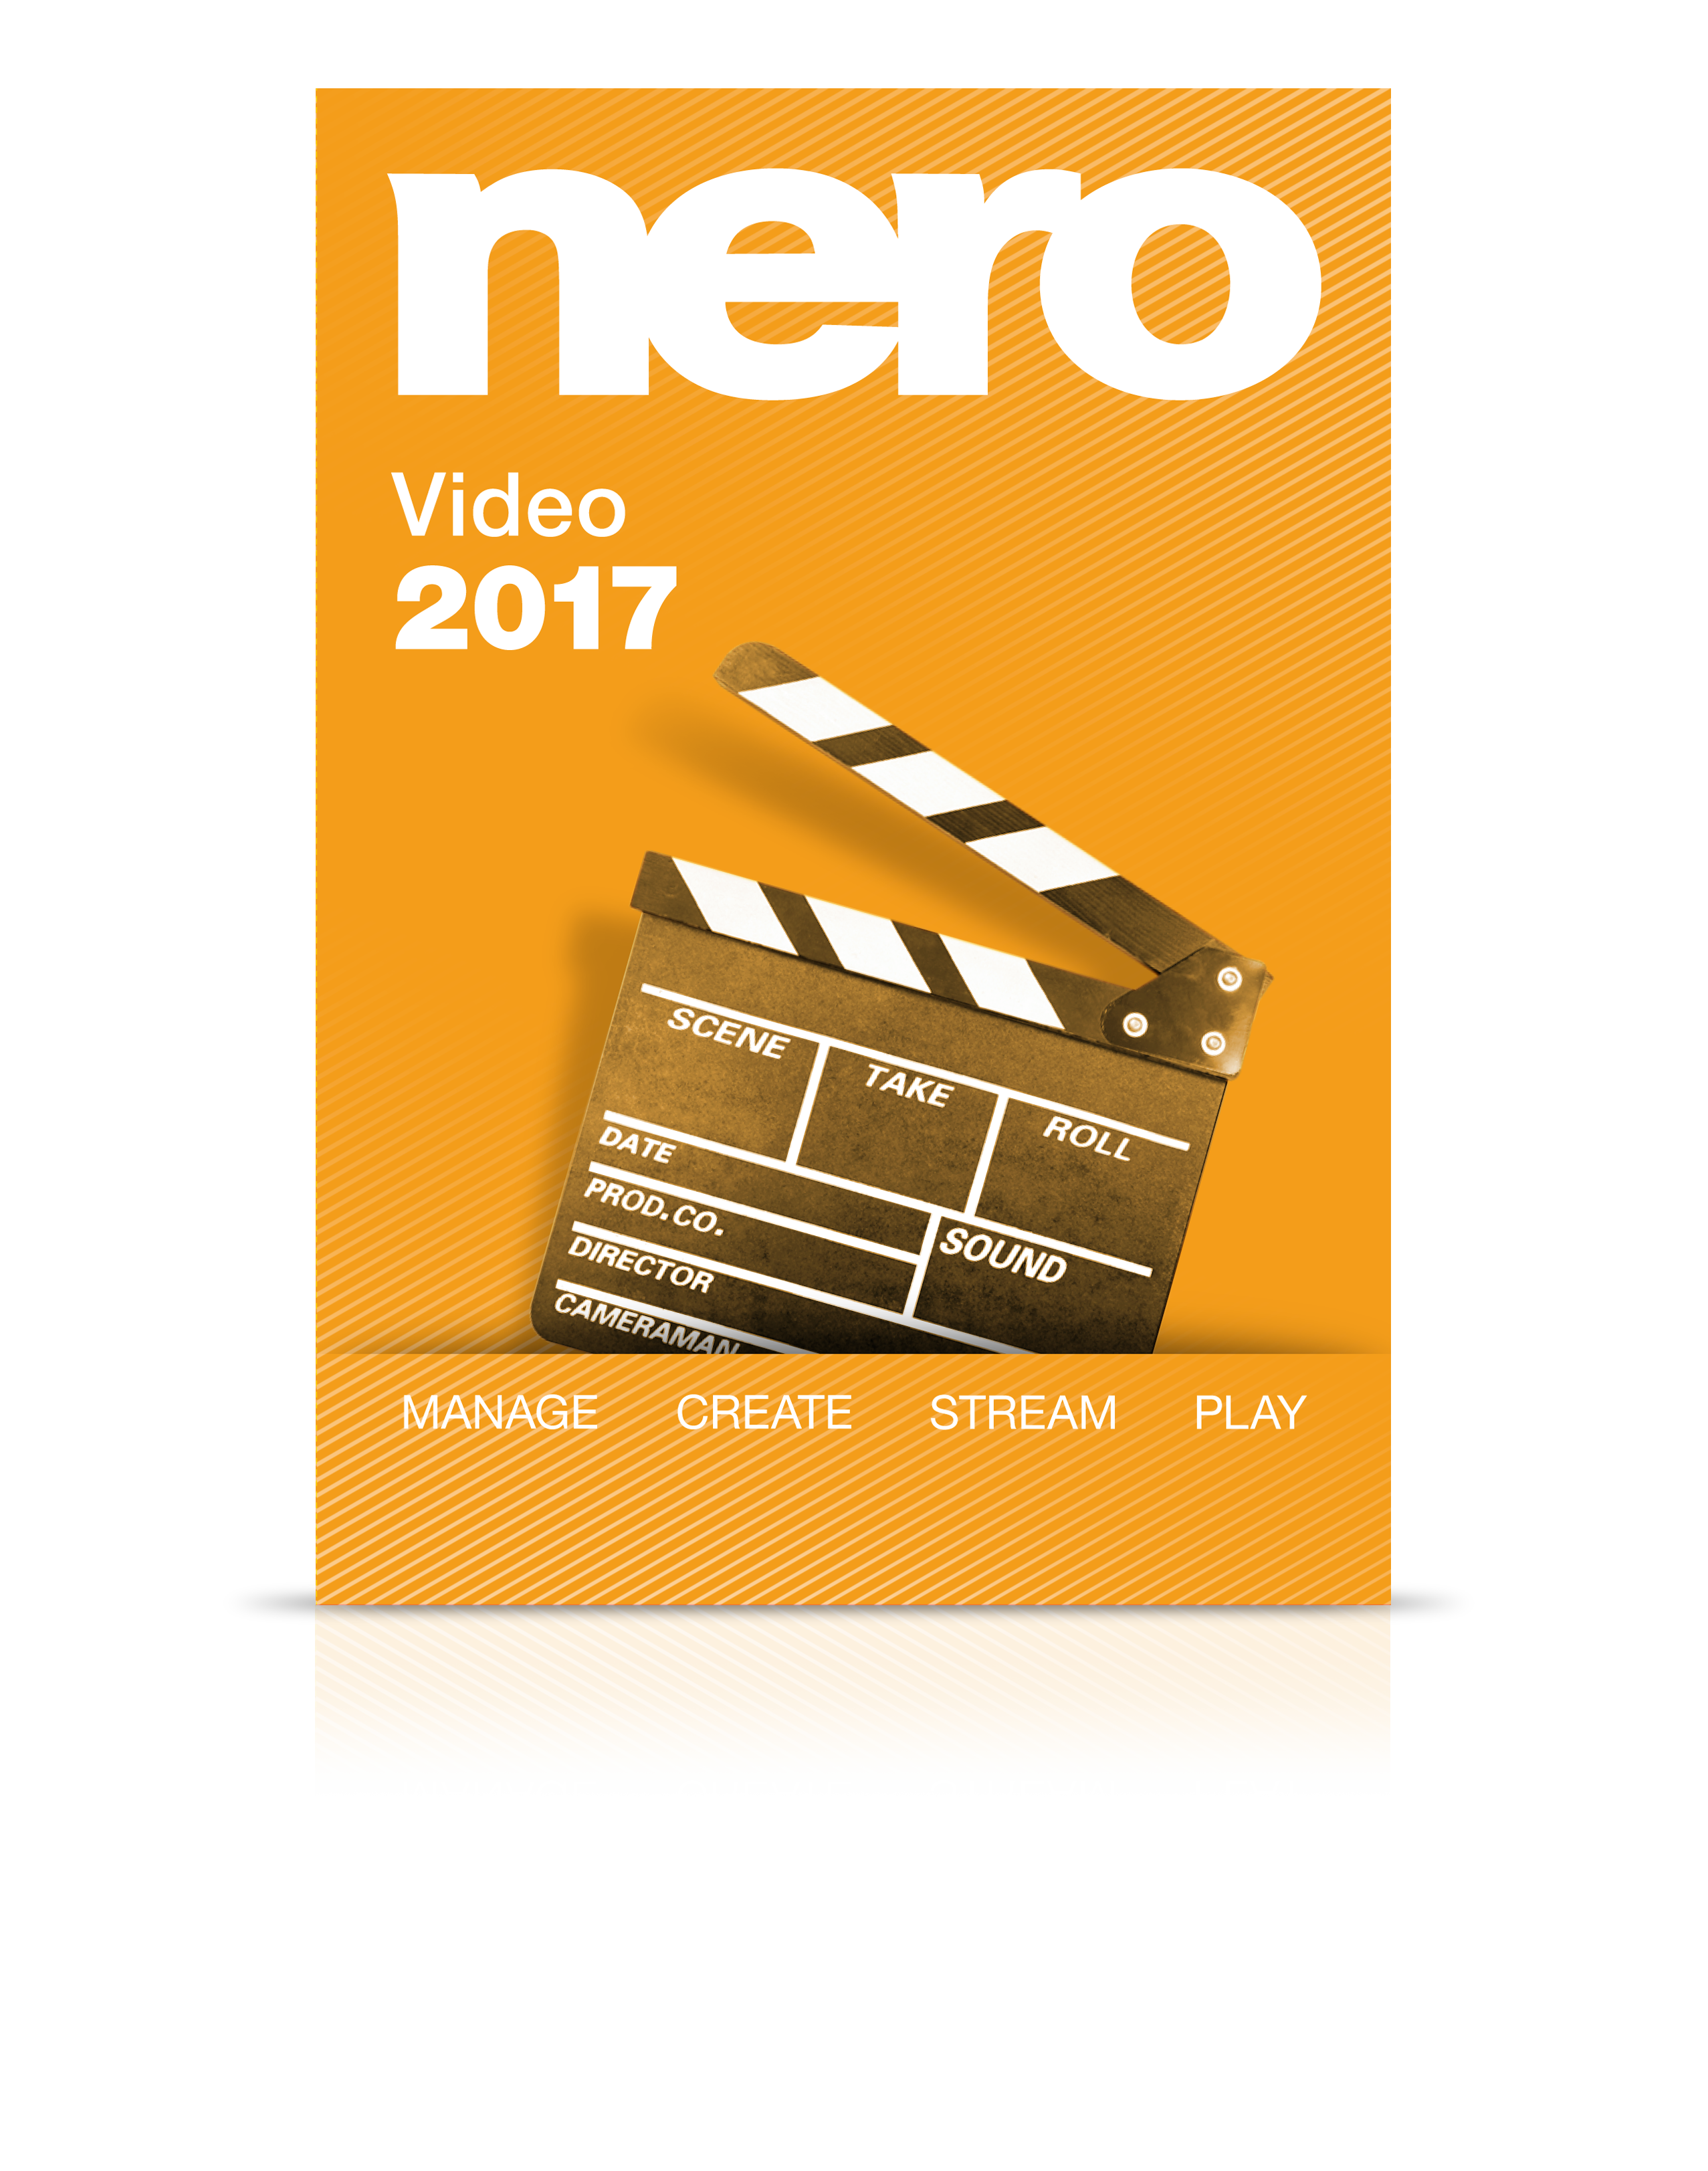 nero-2017-video-download